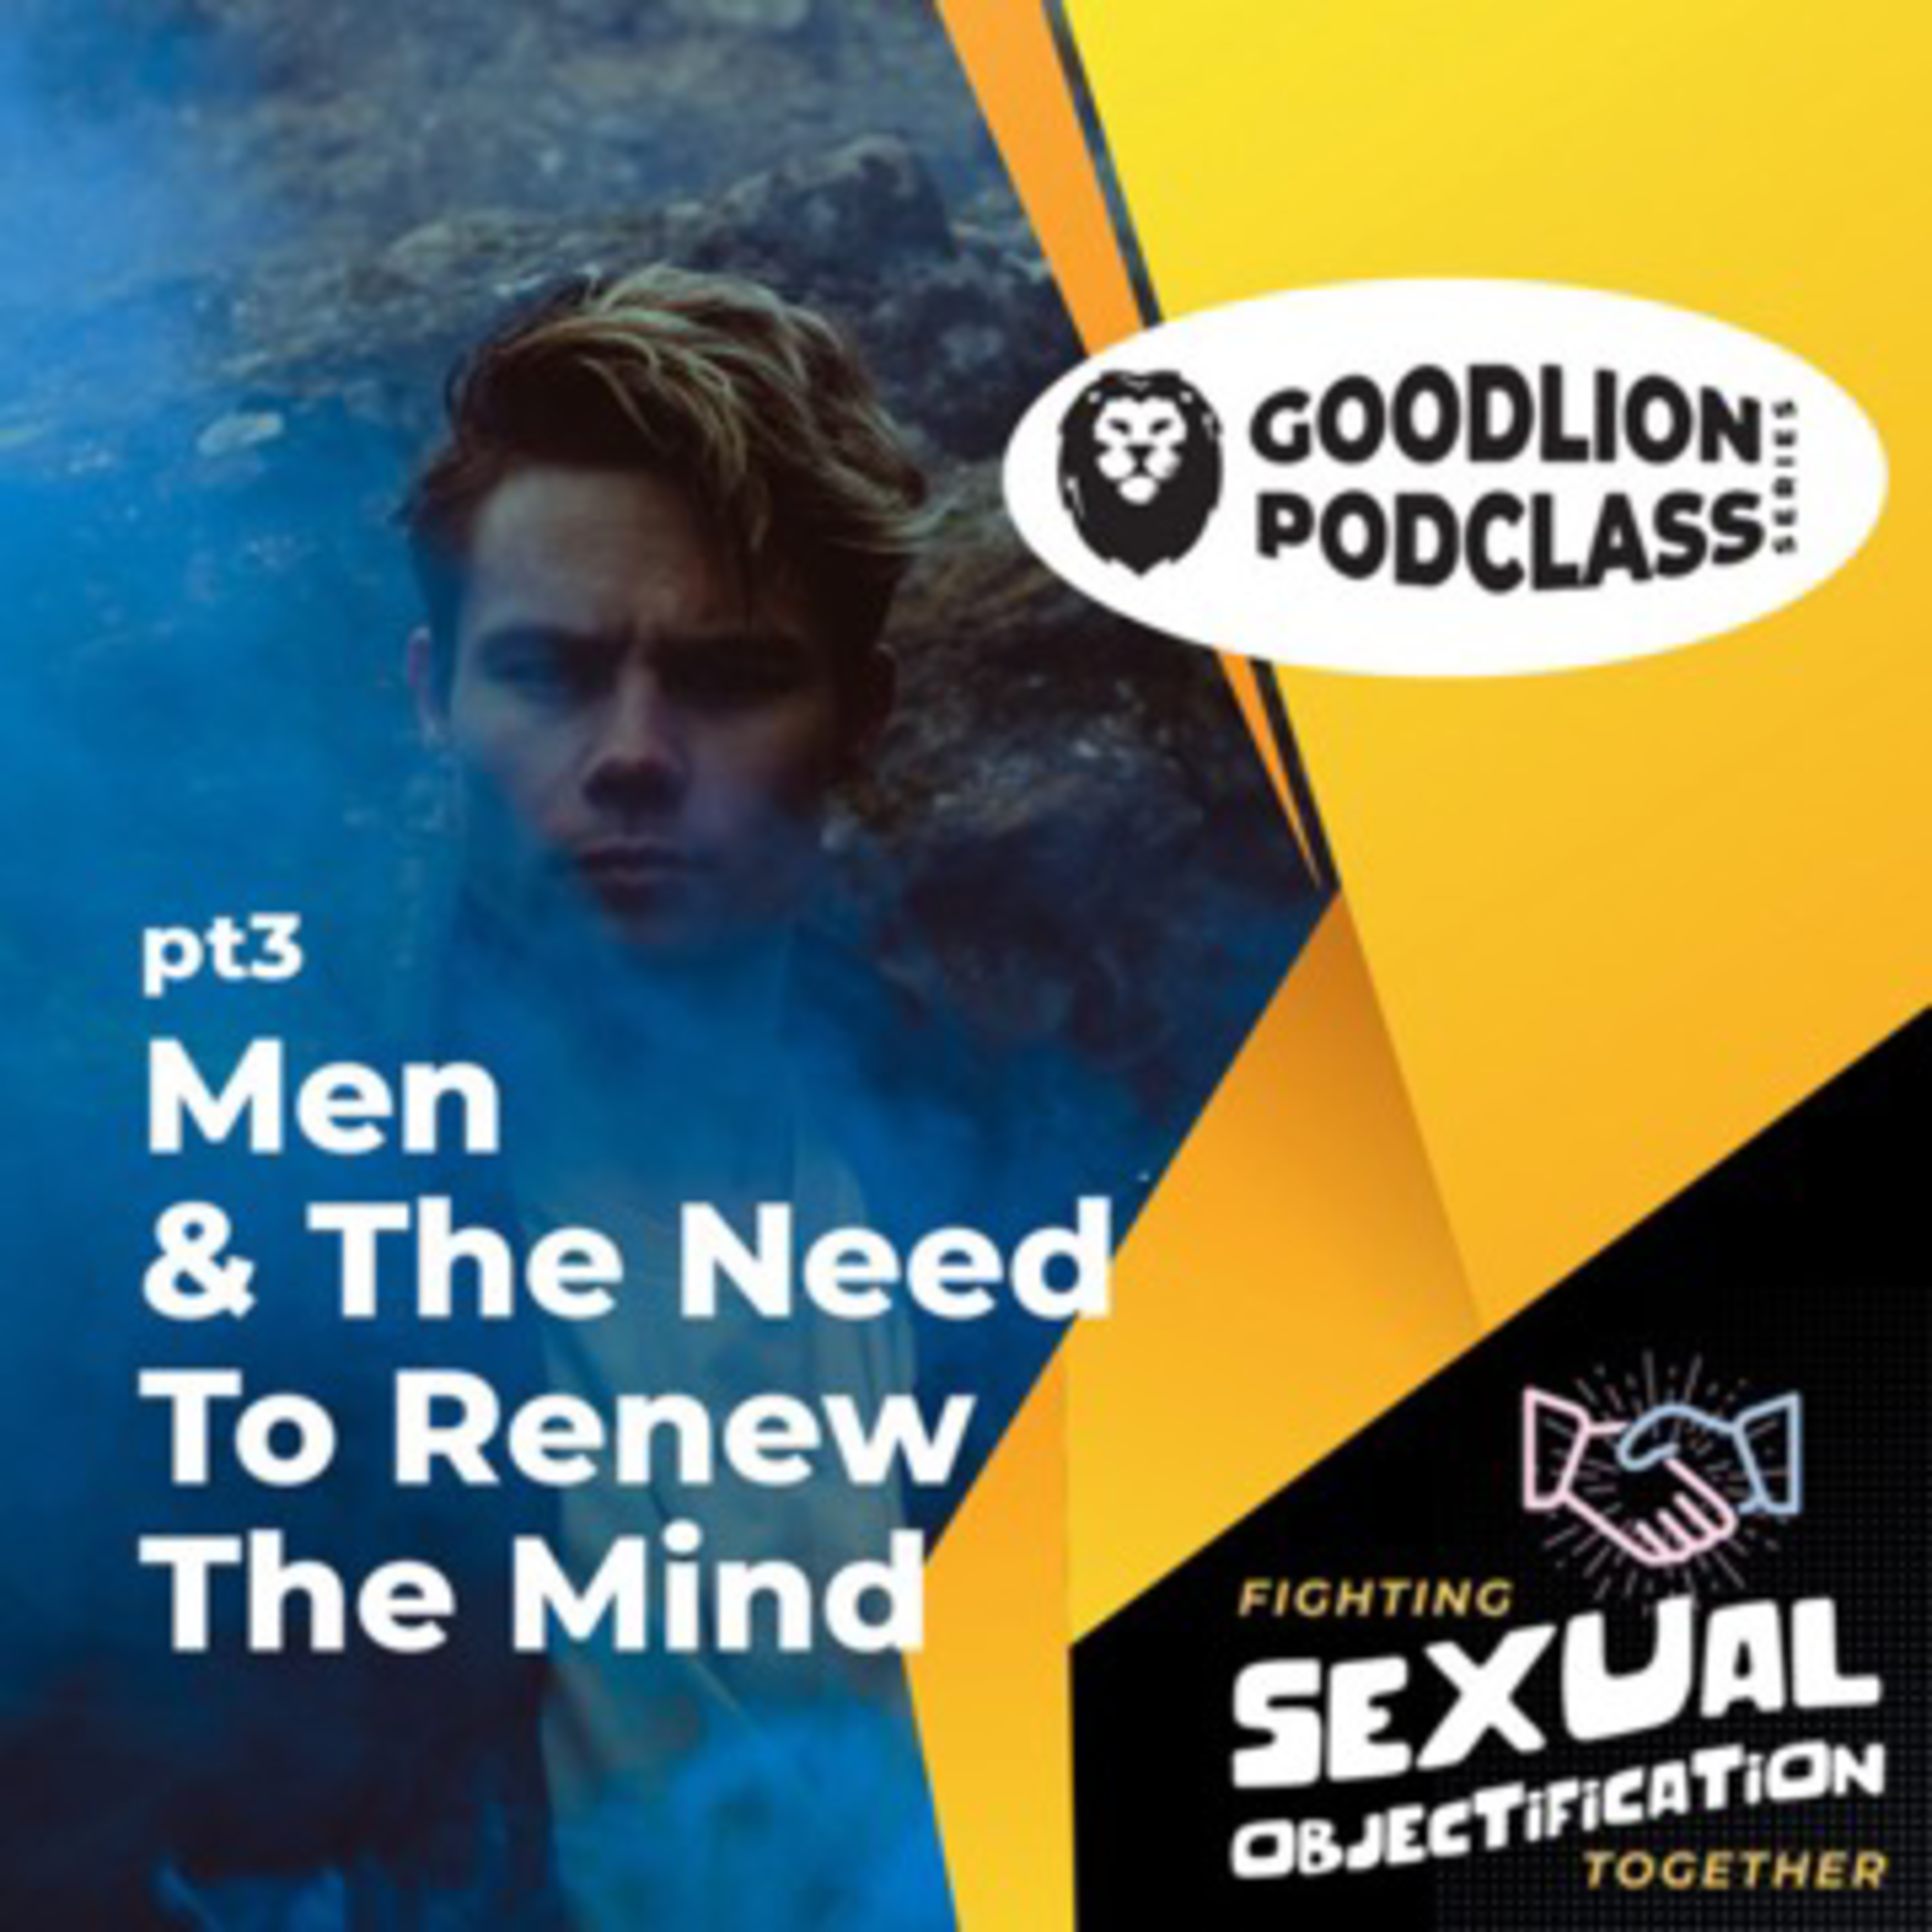 PodClass - Men & The Need To Renew The Mind   Fighting Sexual Objectification pt 3